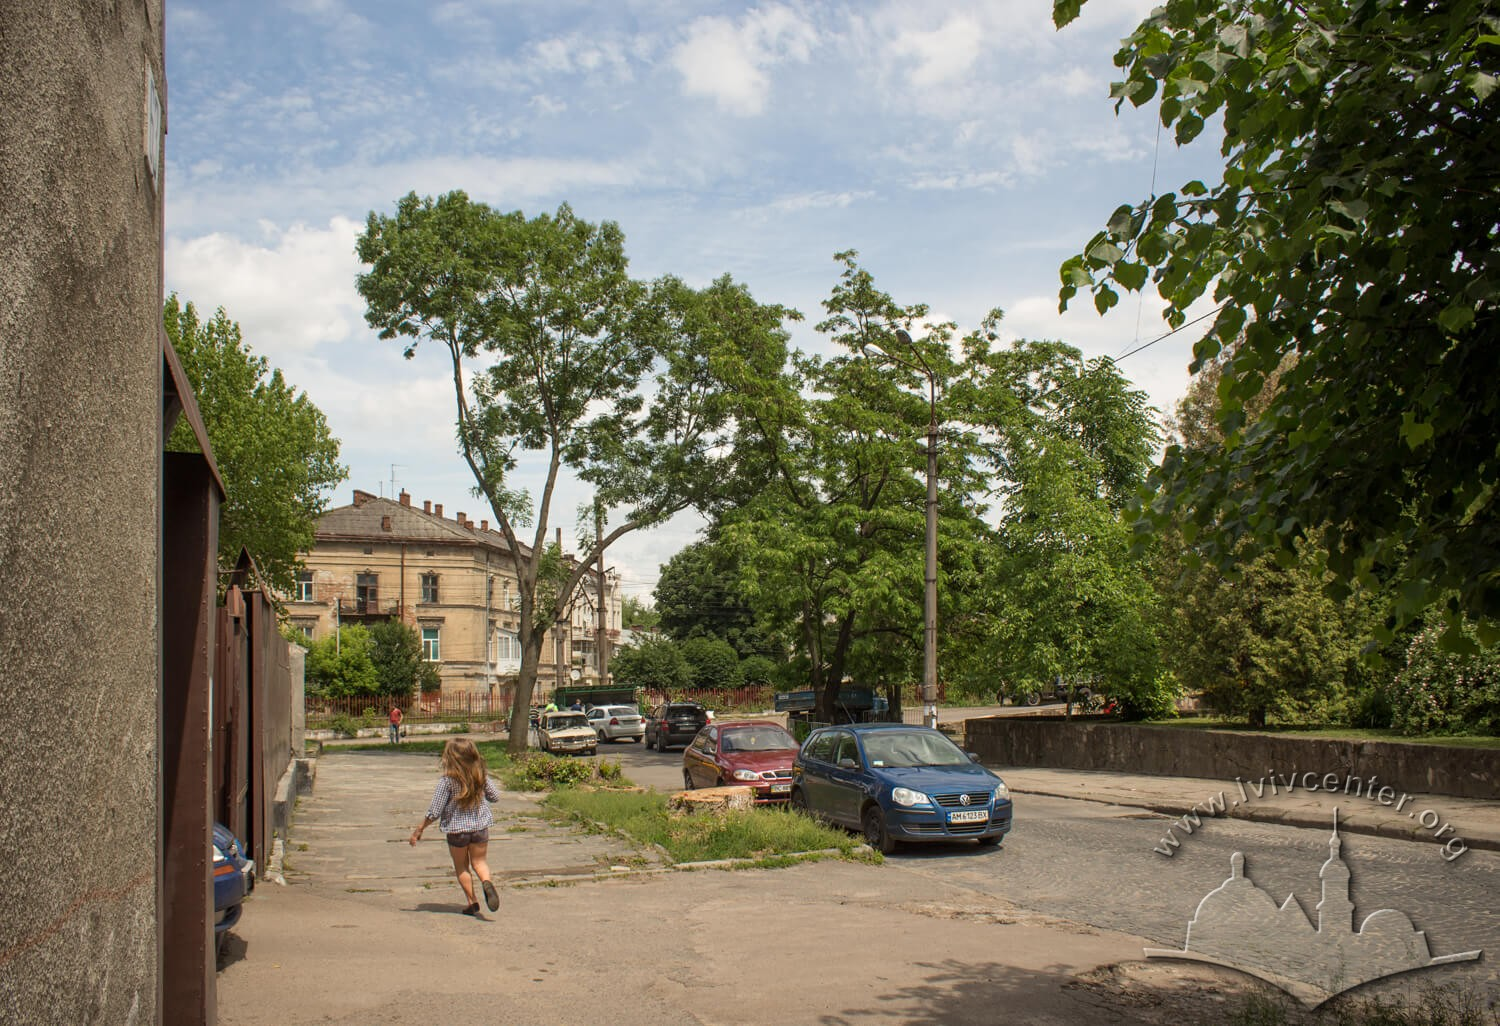 Vul. Khmelnytskoho. On the right, there used to be the Jan Karpf's brewery which was adapted for residence and public steam baths in 1840./Photo courtesy of Olha Zarechnyuk, 2016